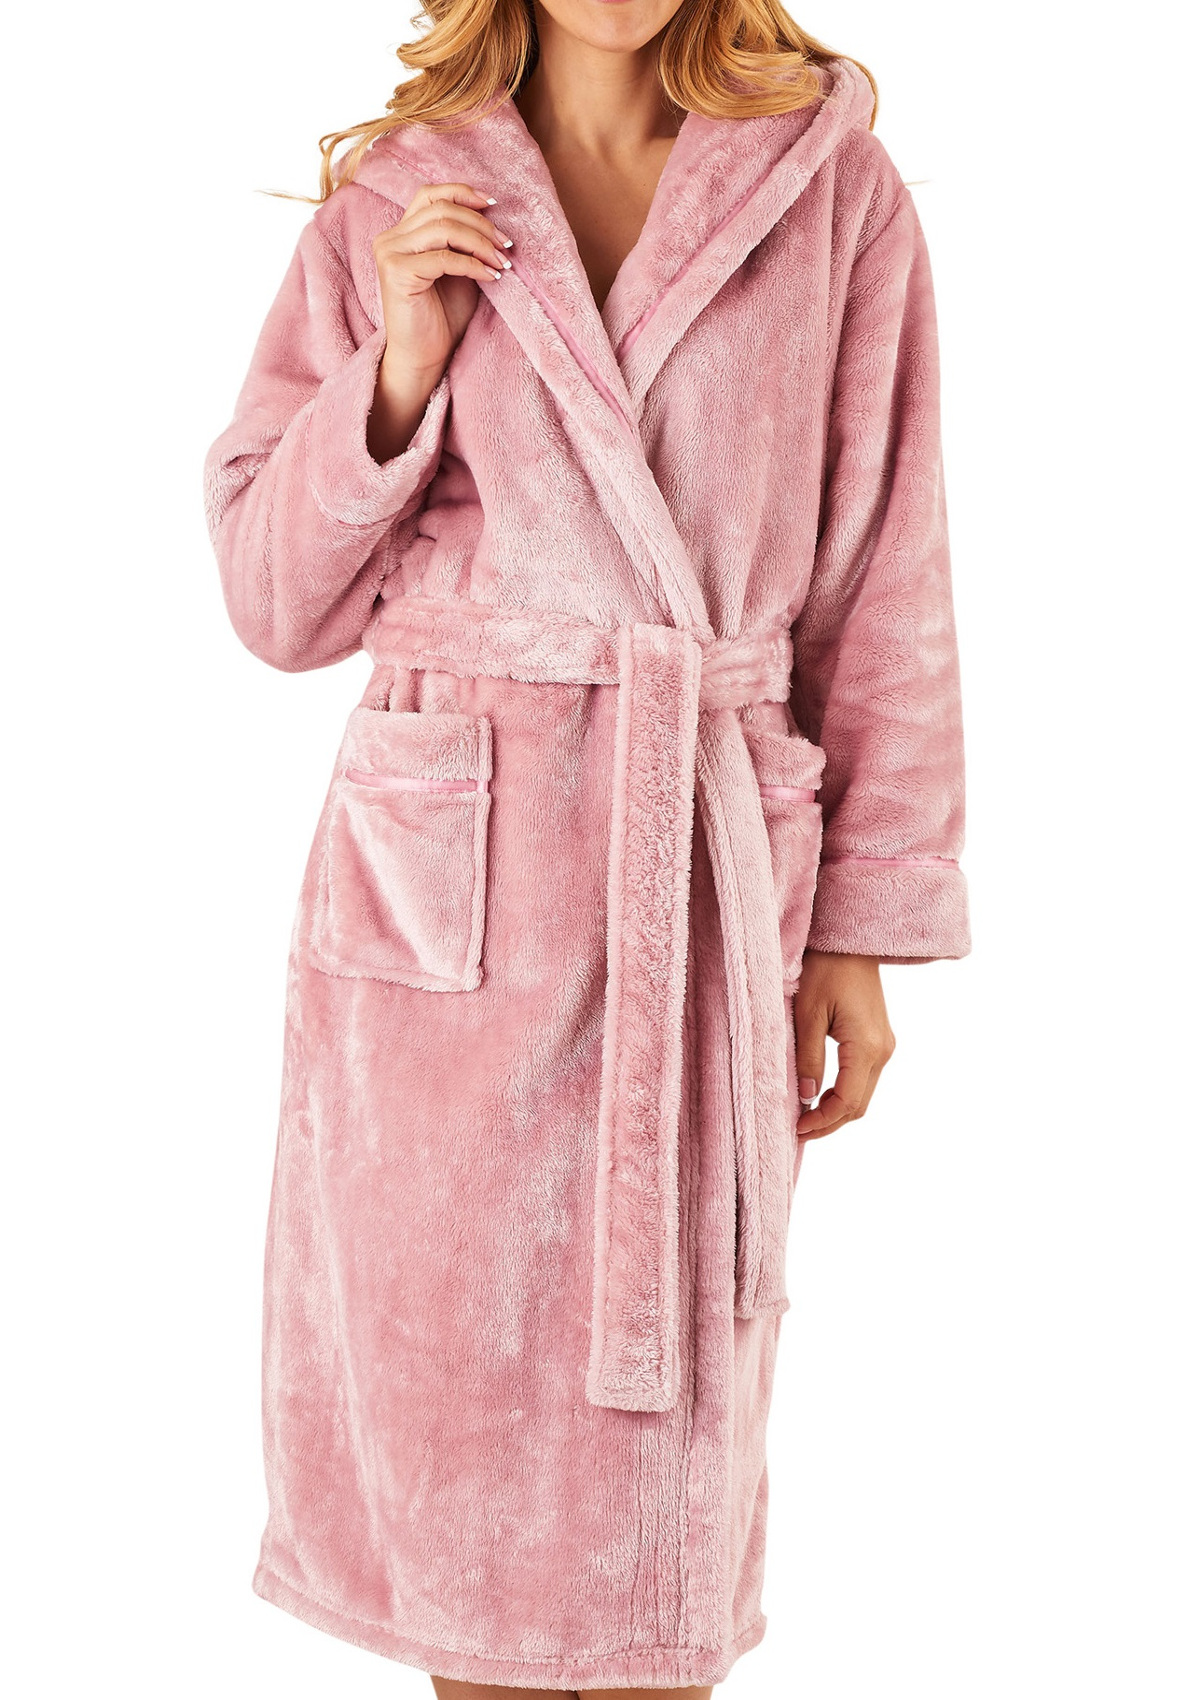 Slenderella Womens Super Soft Thick Fleece Dressing Gown Luxury ... dd35a0f5e